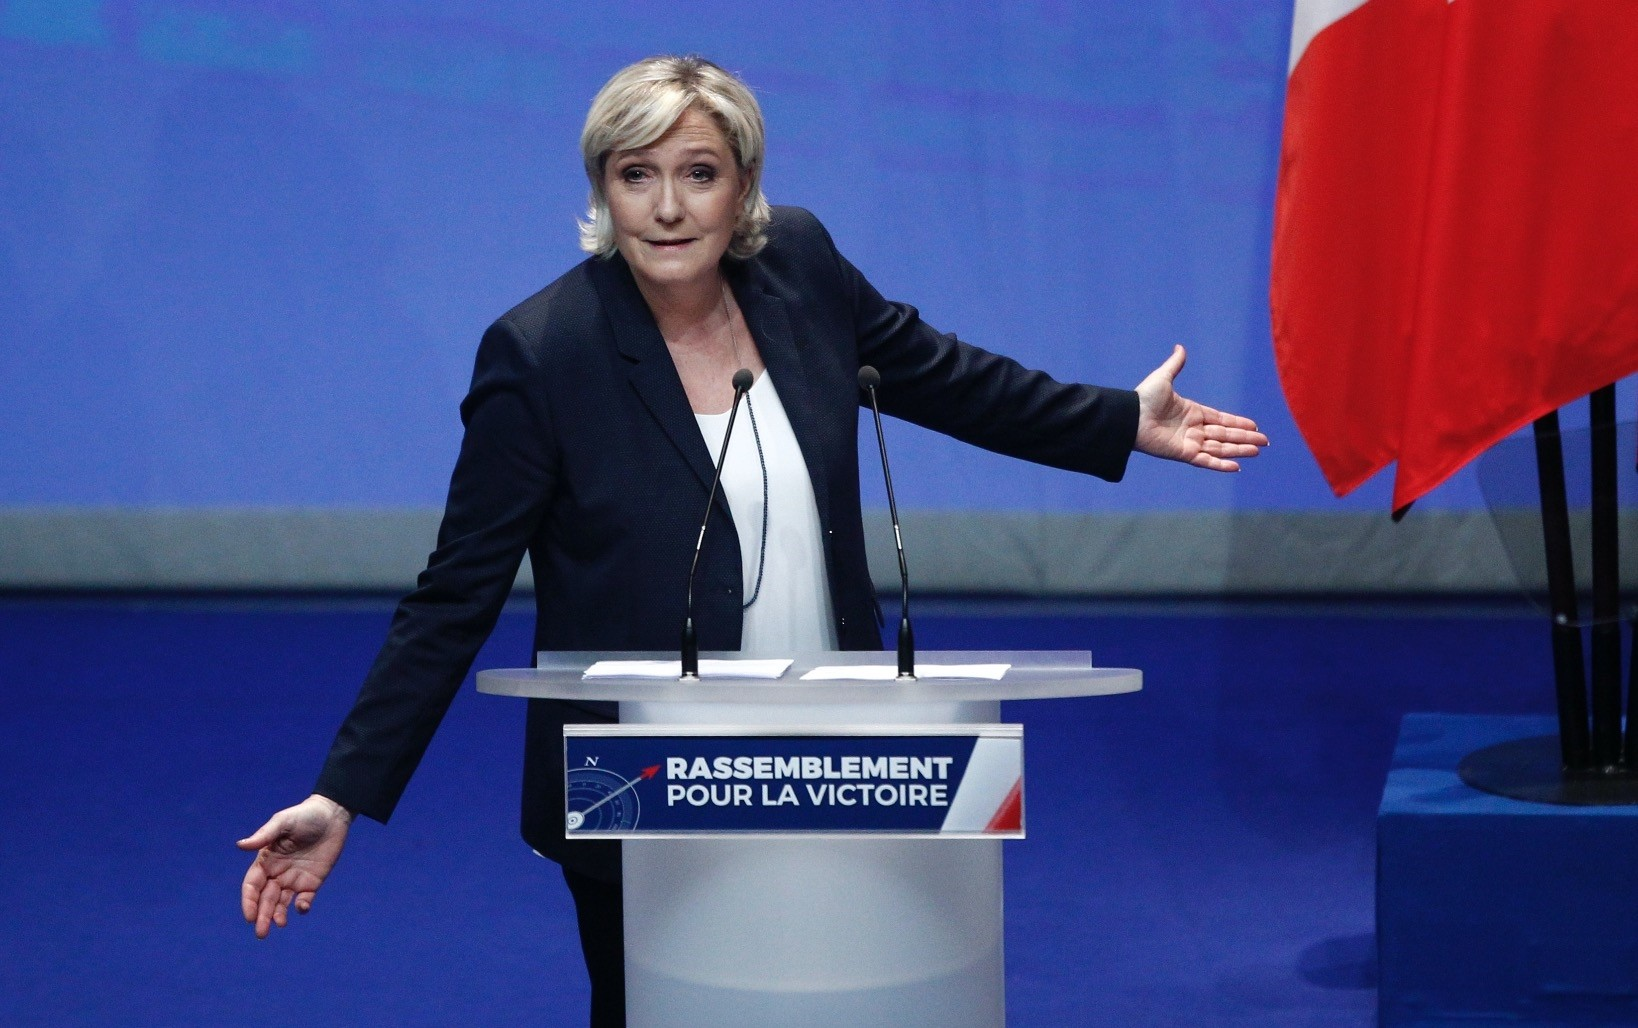 French far-right leader Marine Le Pen delivers a speech at a party congress, Lille, France, March 11.